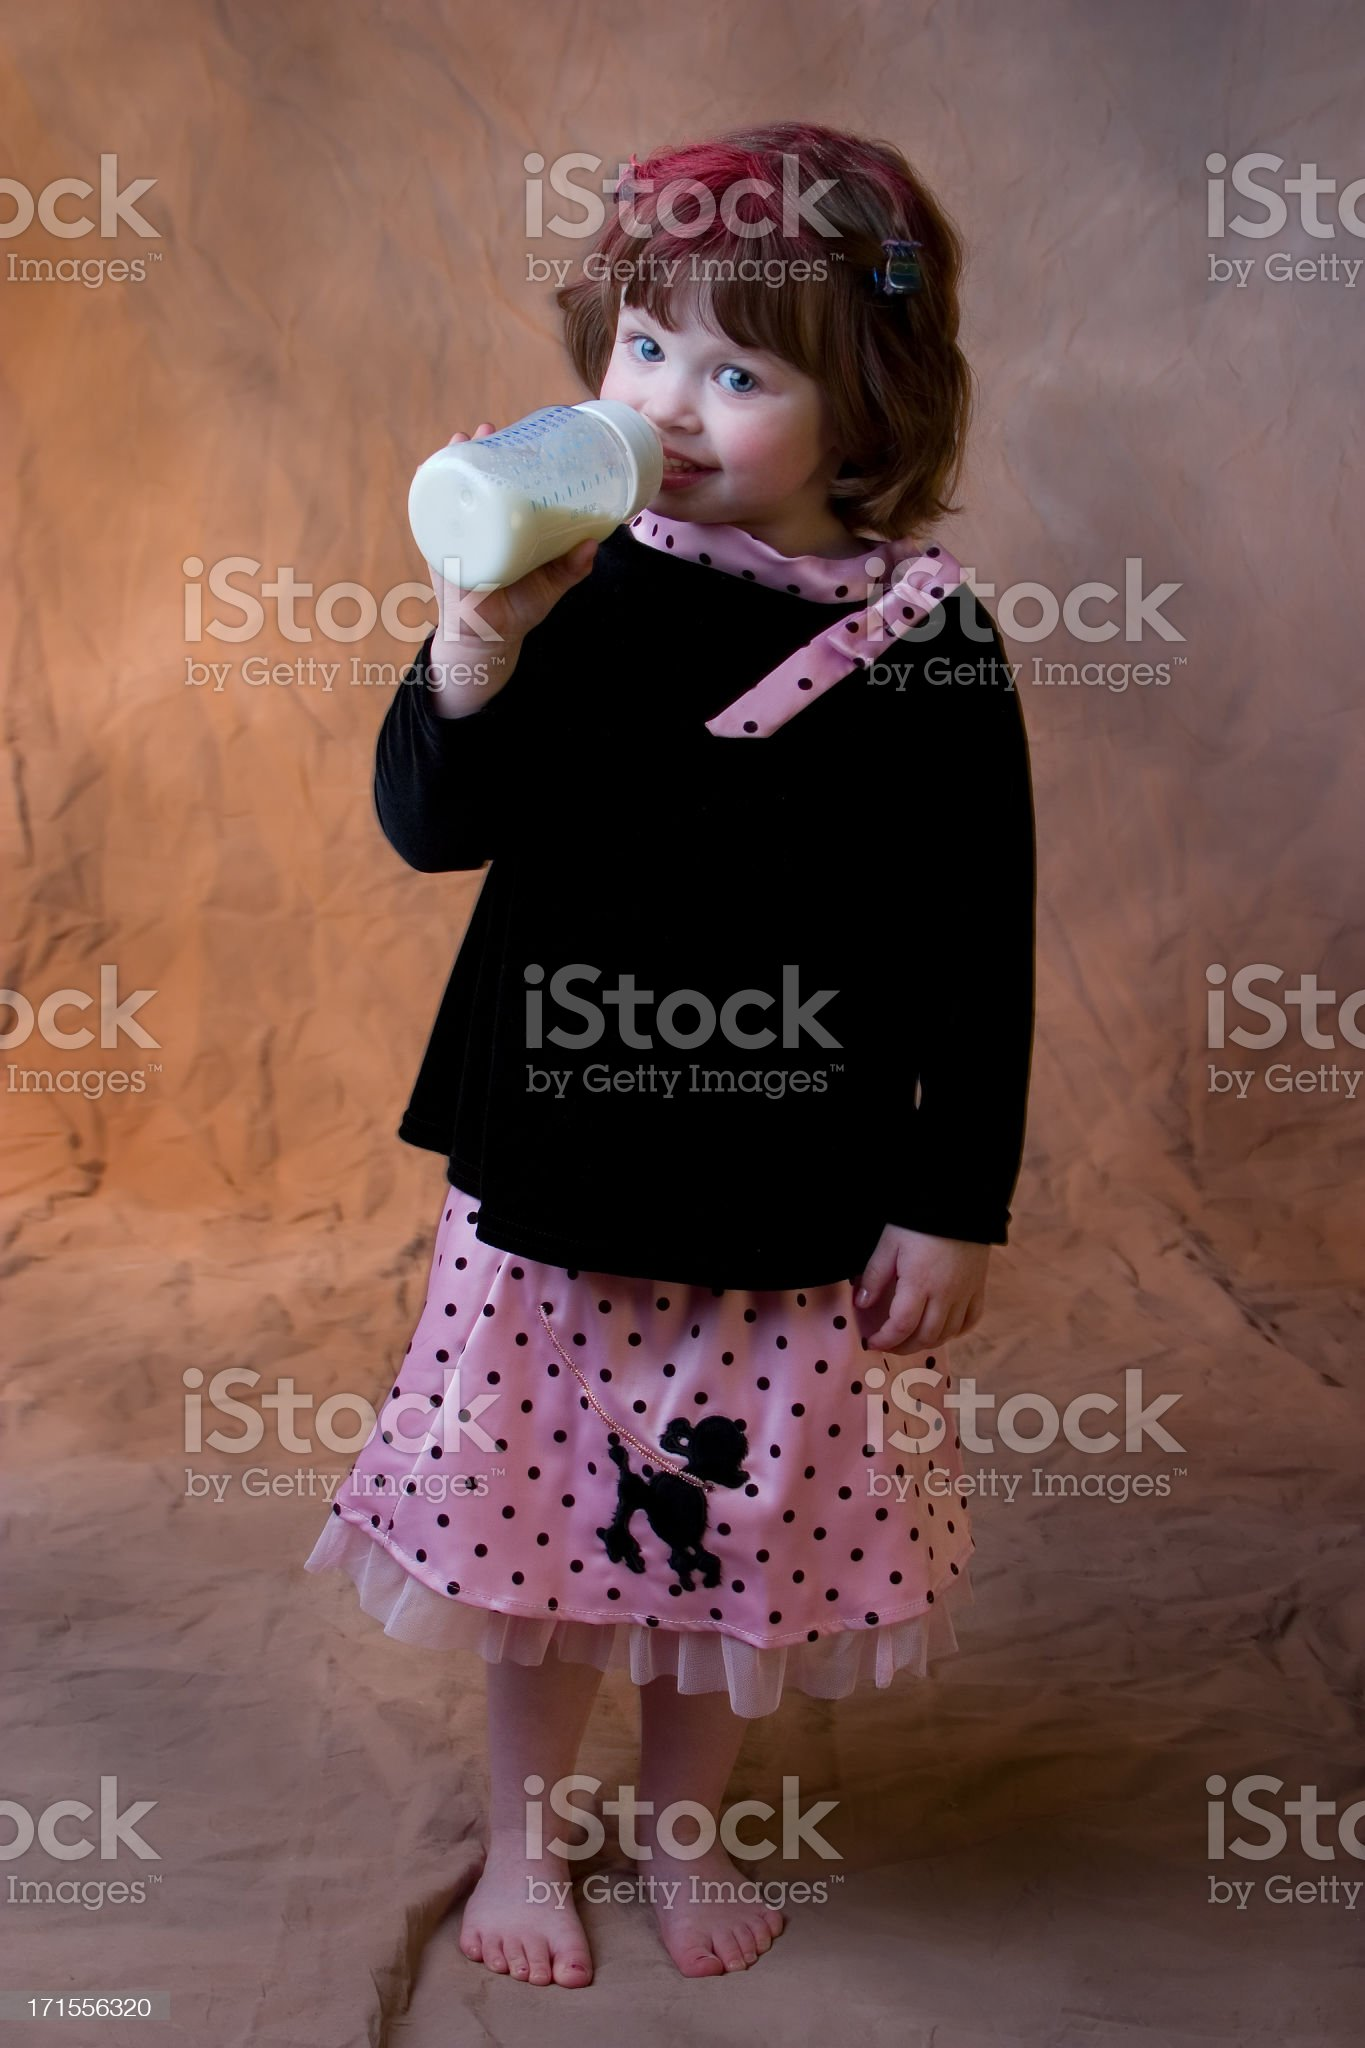 little girl drinking milk bottle with 50s style poodle skirt royalty-free stock photo